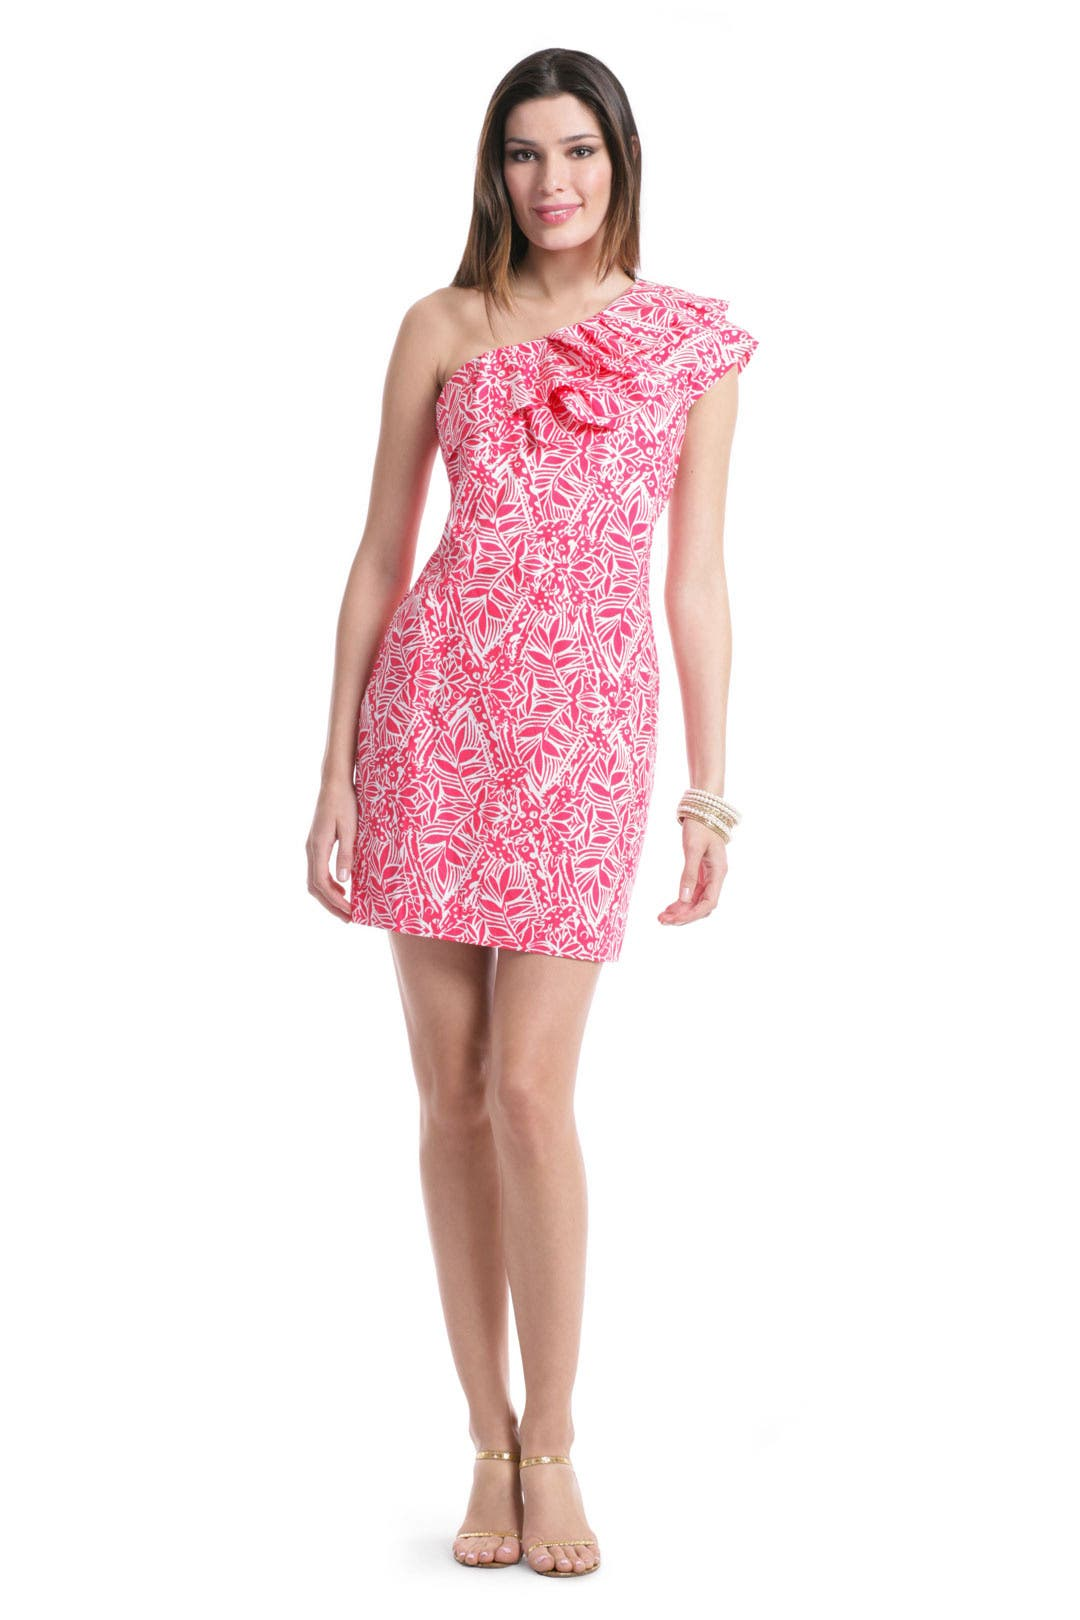 Punchy Pink Dress by Lilly Pulitzer for $47 | Rent the Runway